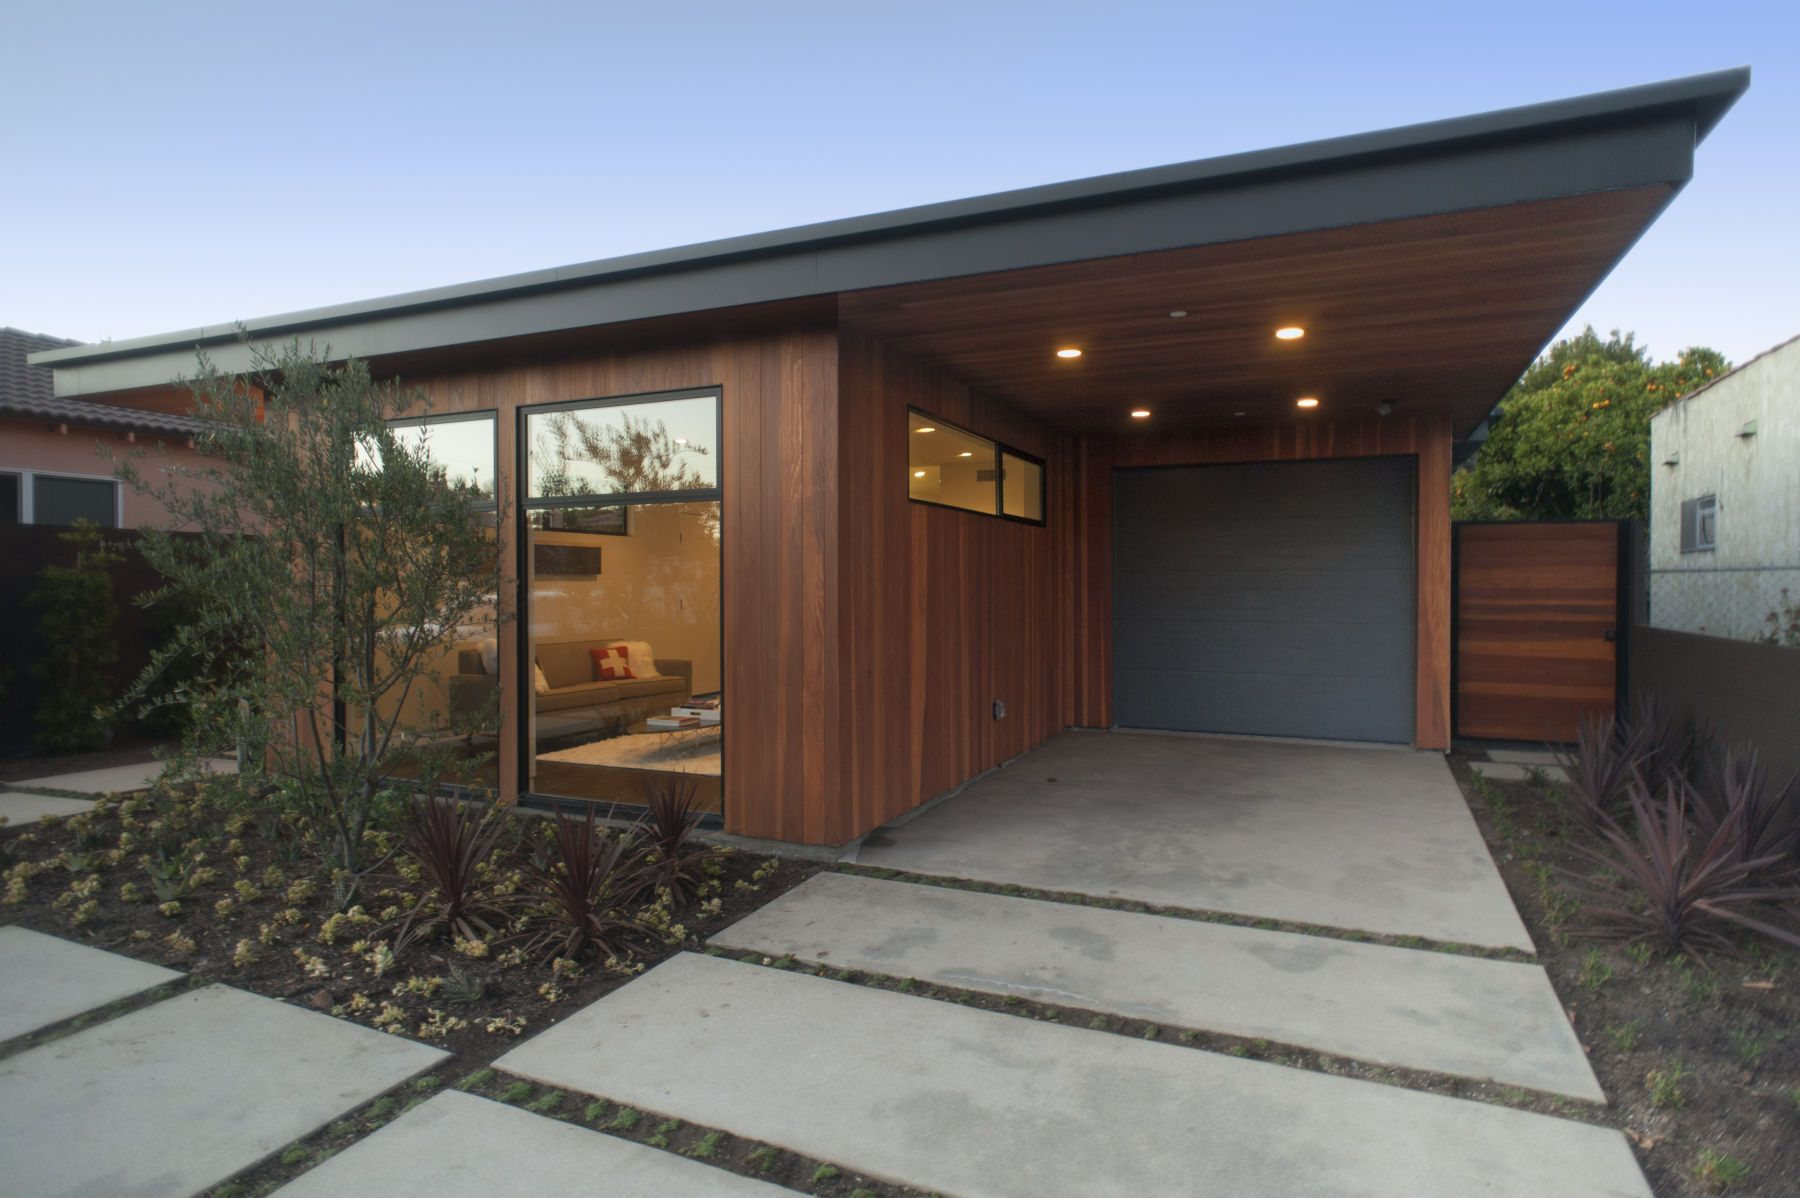 Mid century modern exterior house colors - Find This Pin And More On Mid Century Modern Homes